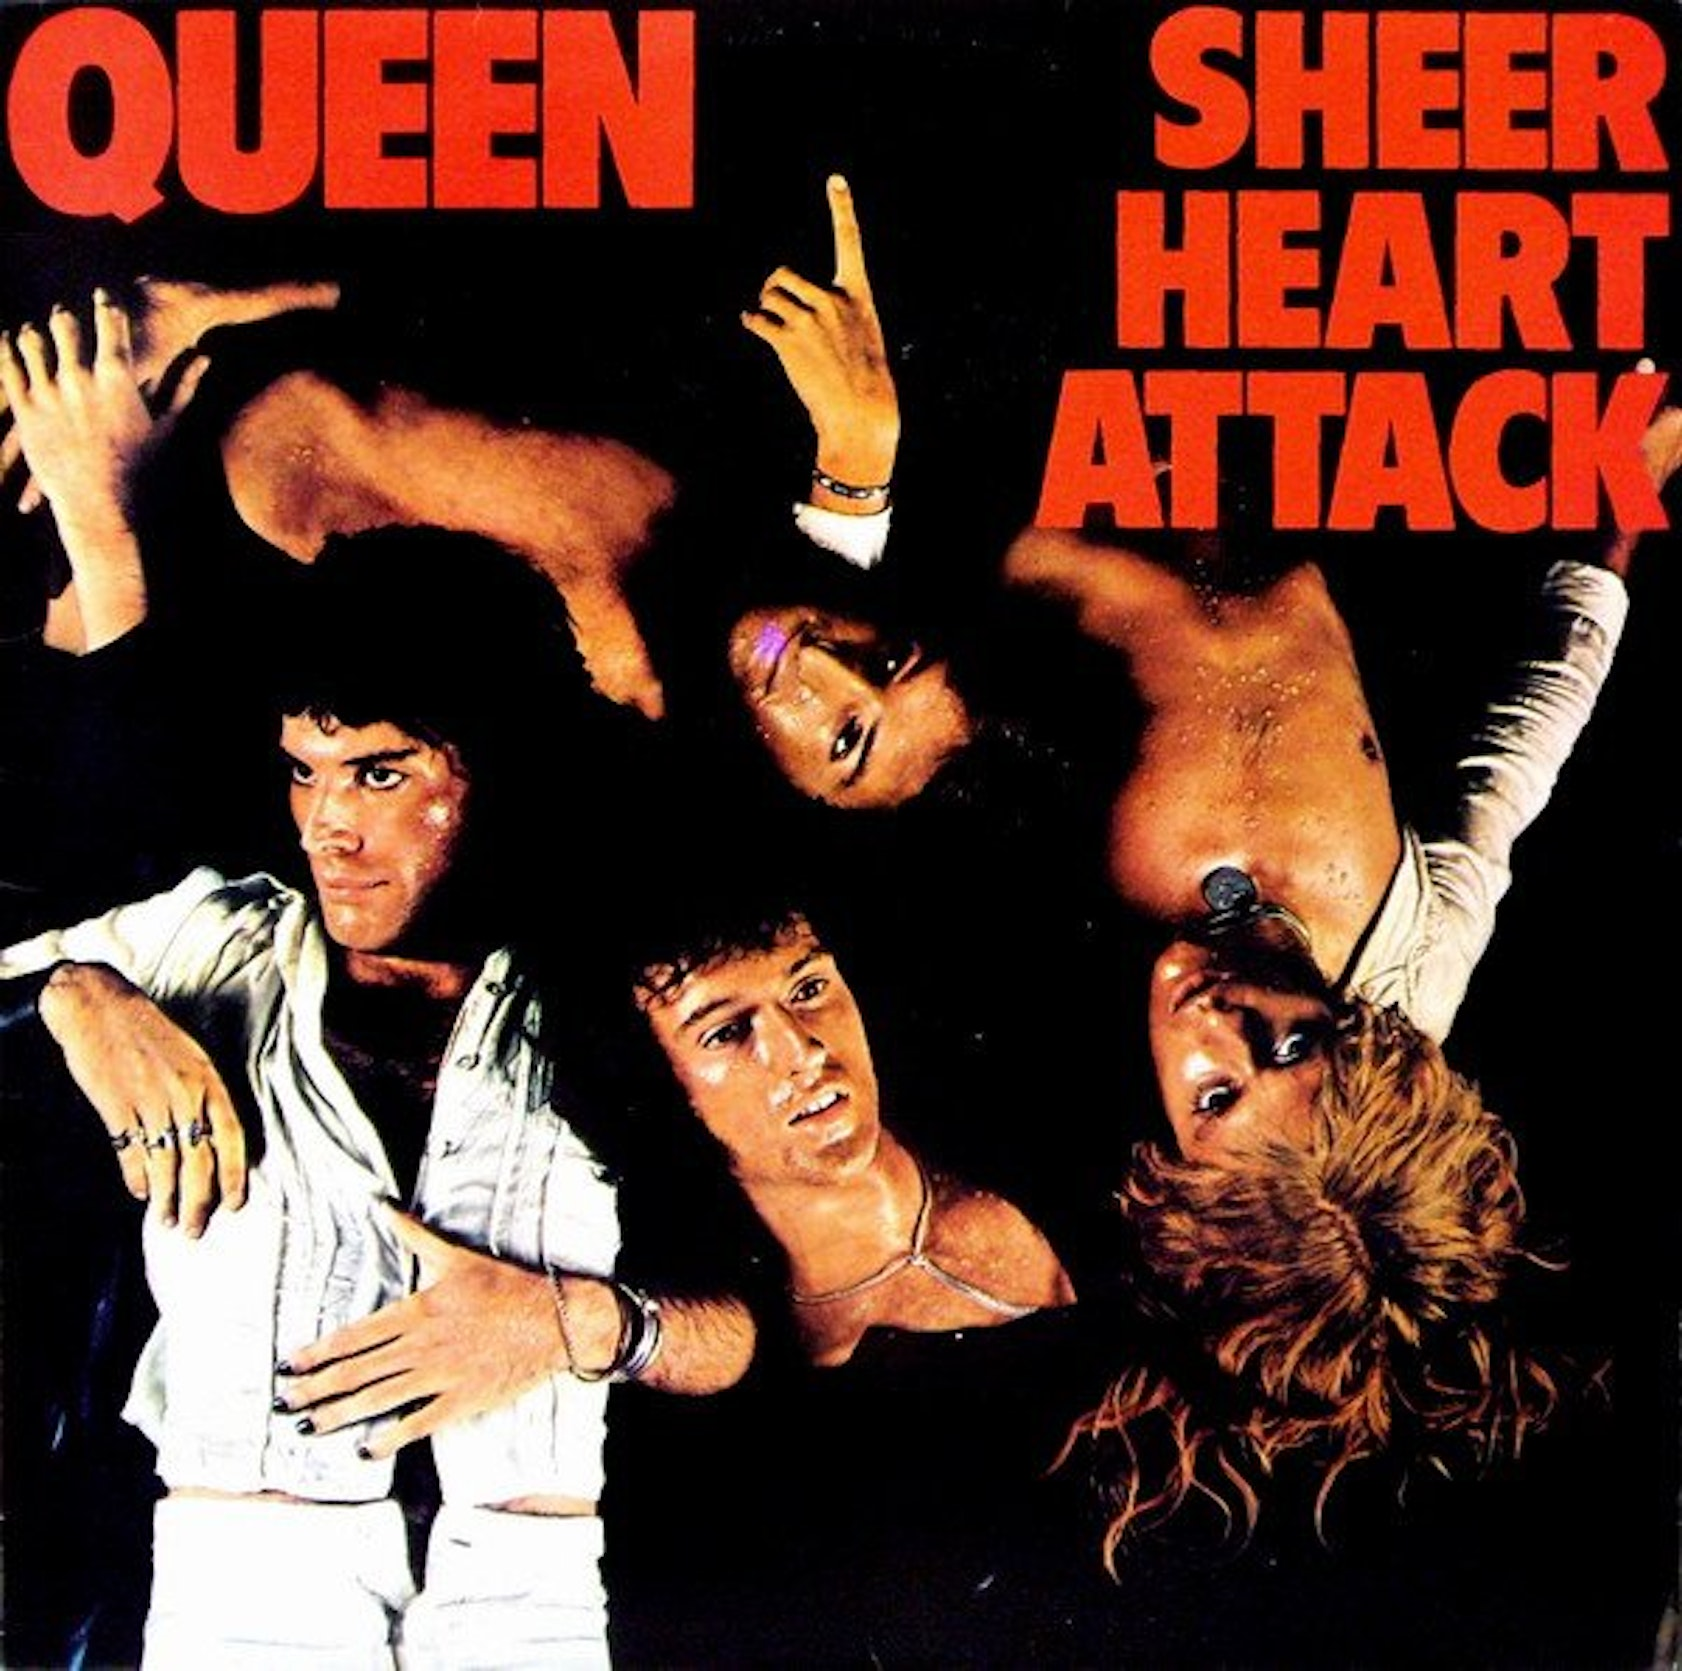 the march of the black queen is the albums most audacious track but queen ii also showcases something sadly underrepresented by their hits the tender